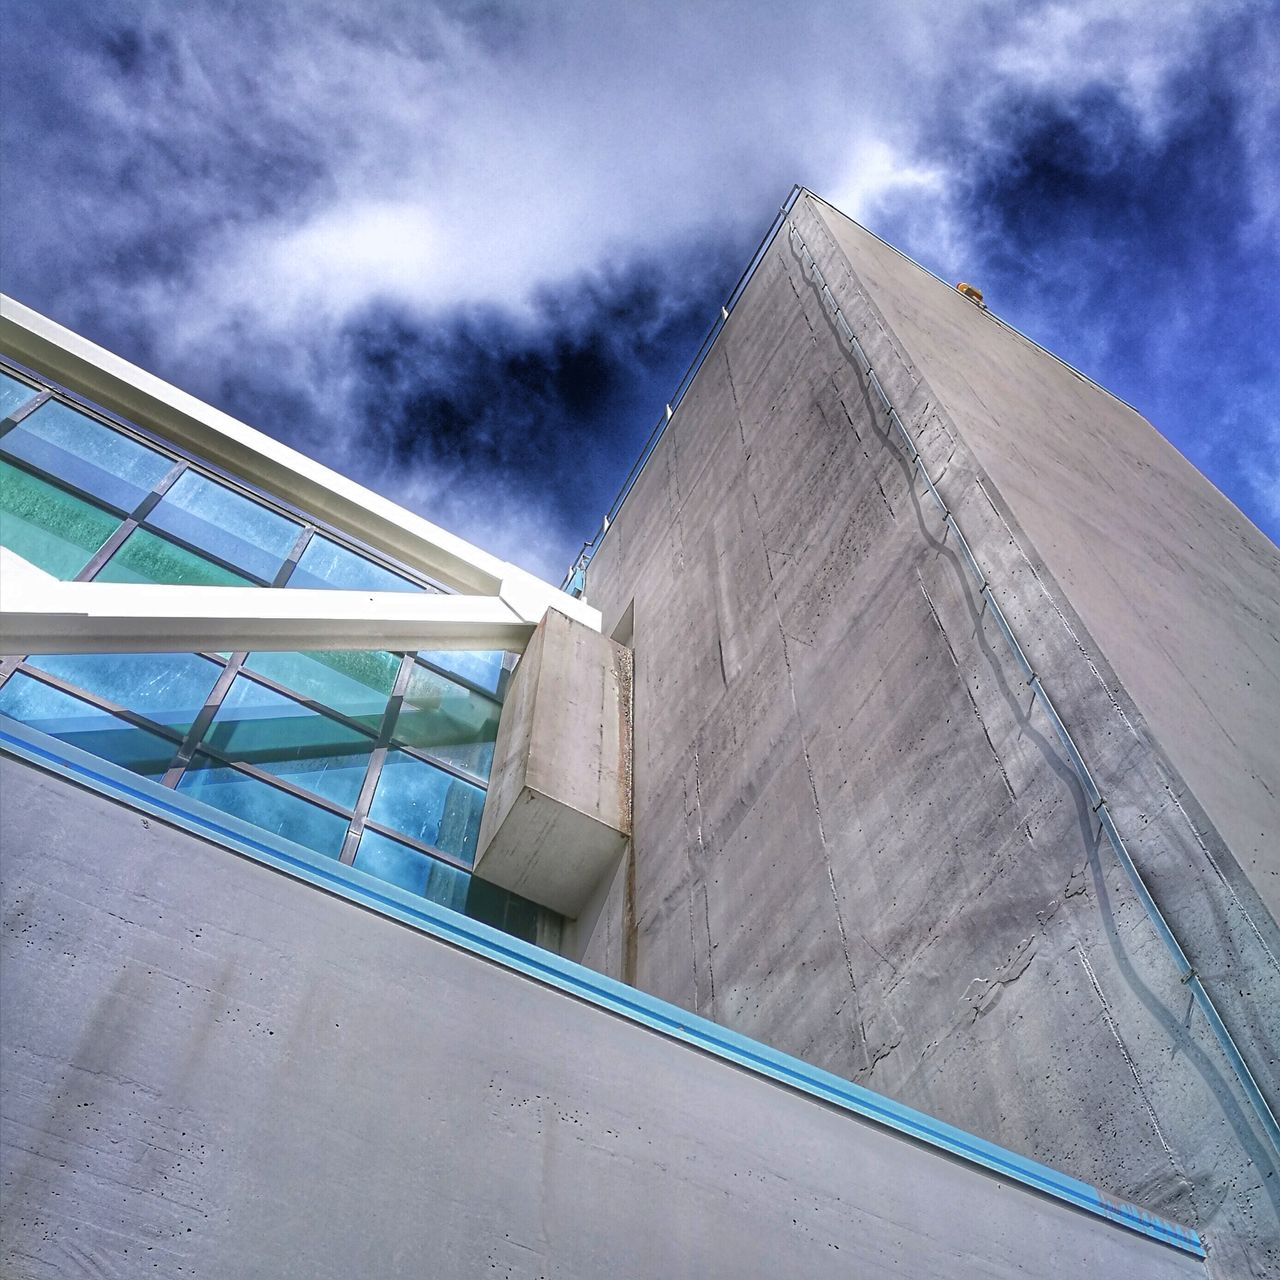 Sky .. Architecture Cloud - Sky Sky Built Structure Low Angle View Building Exterior Outdoors No People Modern City Day Pyramid HDR Hdr_Collection Hdr Edit HDR Collection Hdrphotography Hdr_lovers Hdr_gallery Hdr_pics Hdr_captures Hdroftheday Hdr_arts  Hdr_arts  Hdr_arts